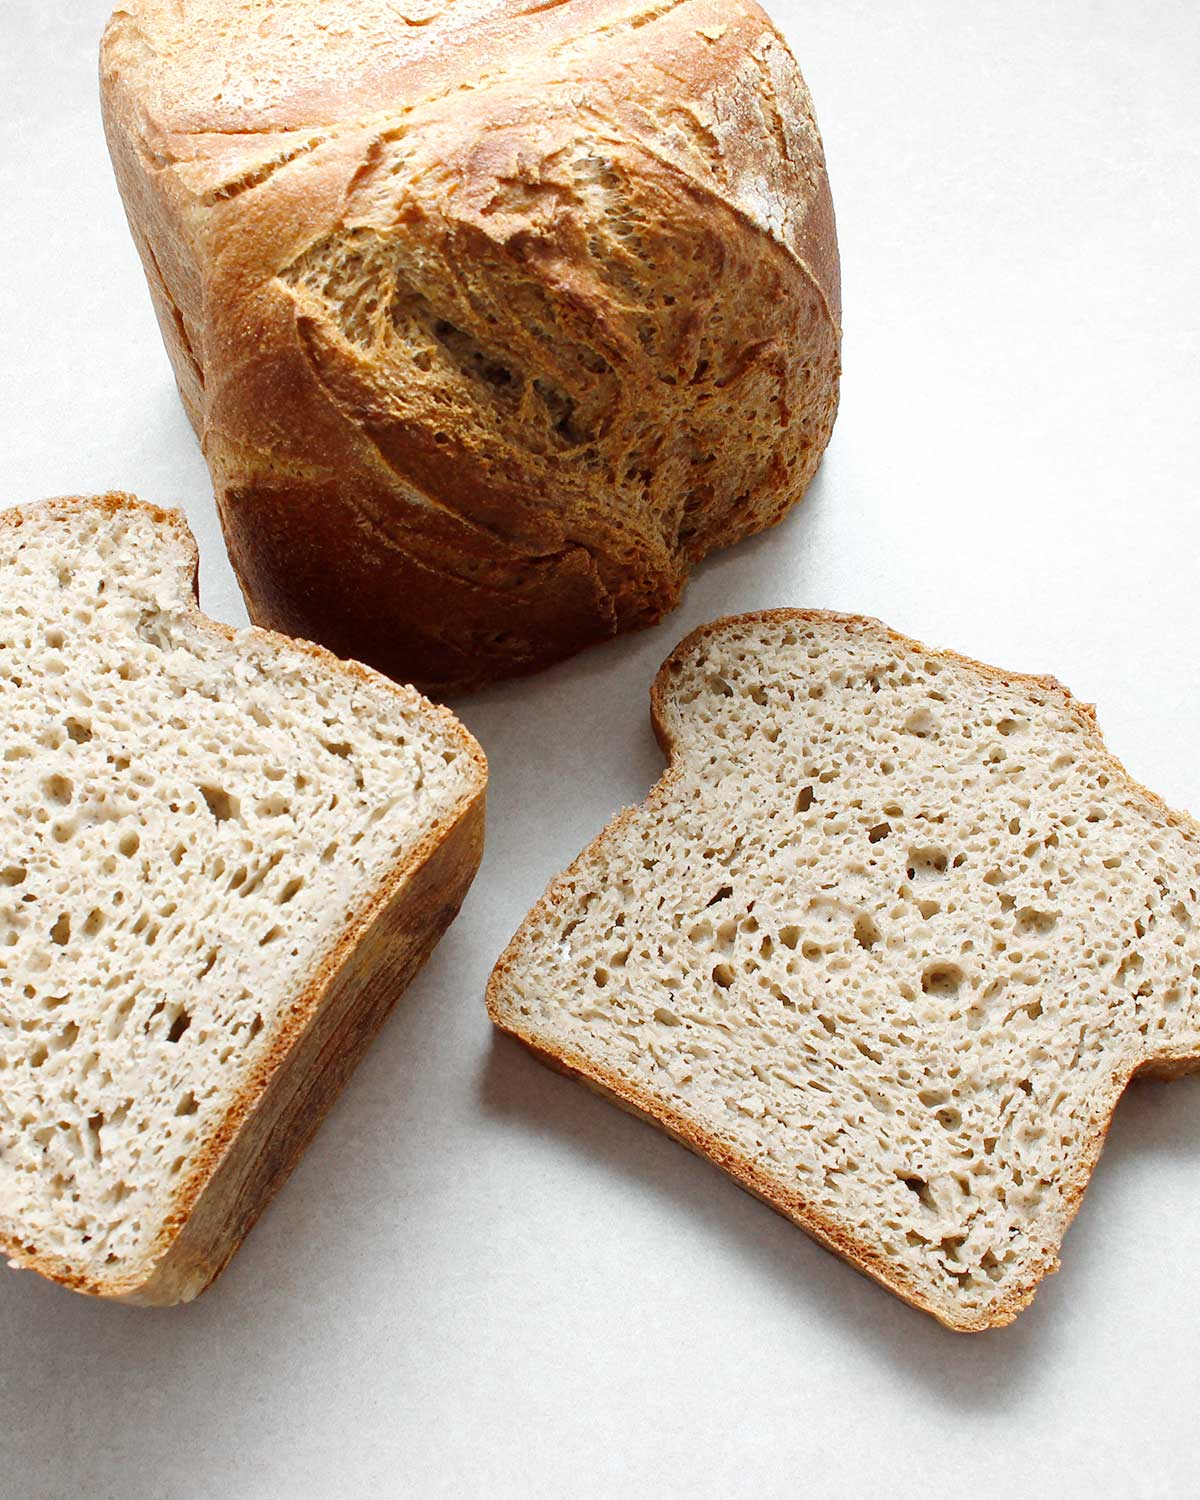 Sliced gluten-free wild yeast bread